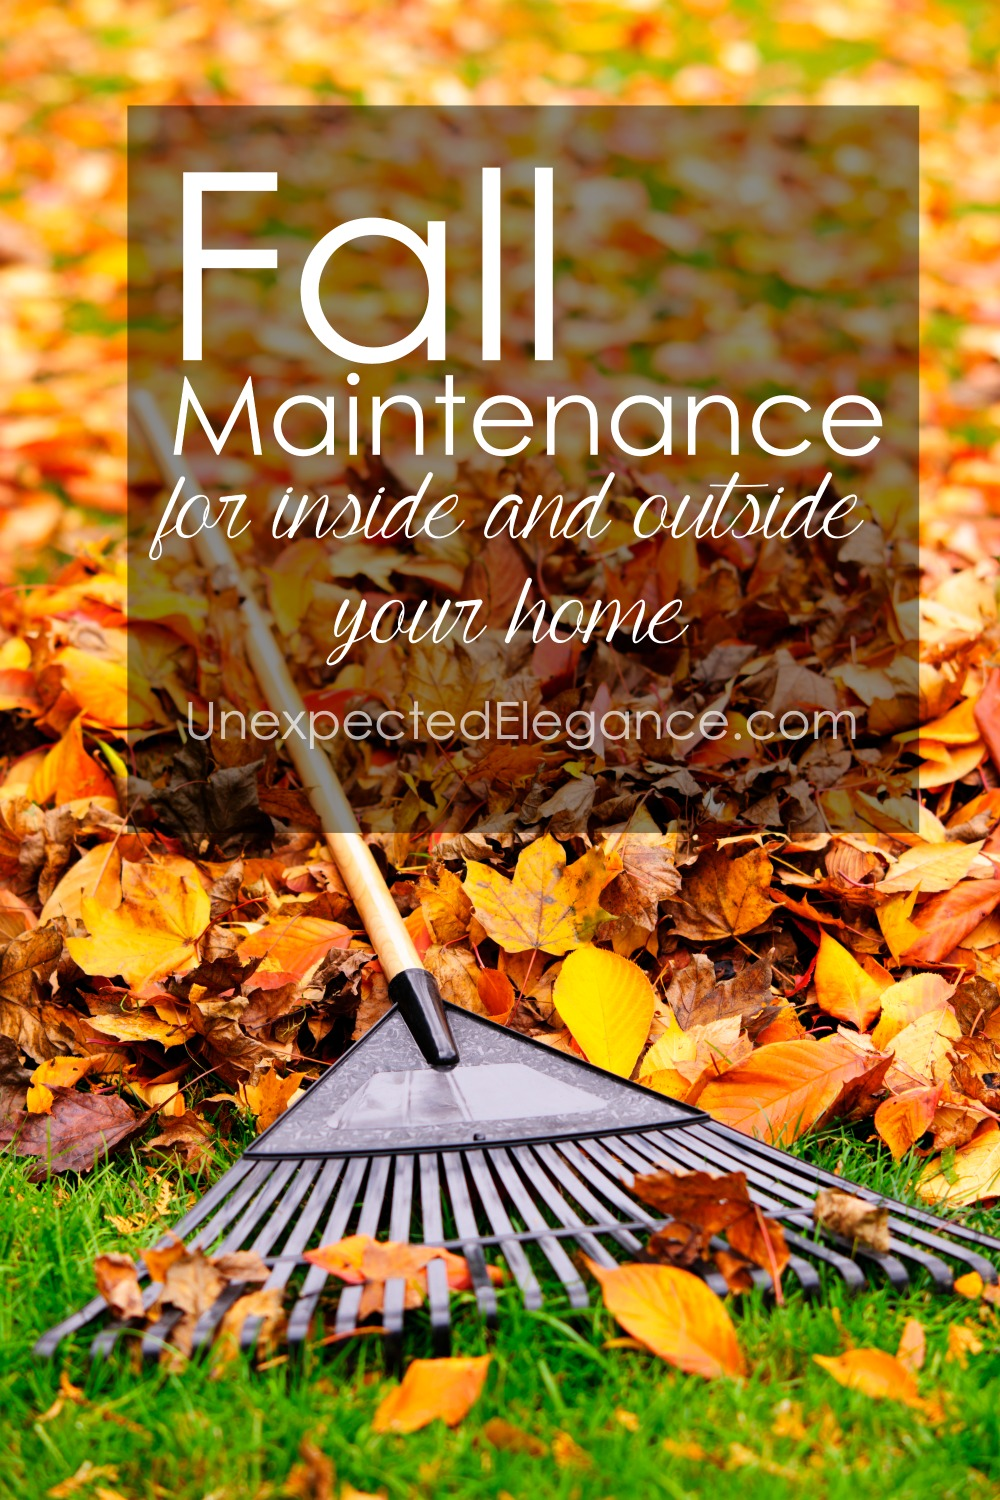 Fall is the perfect time to start maintaining for your home. There are several fall maintenance tips for inside and outside the home, whether it's your lawn or your heating system.